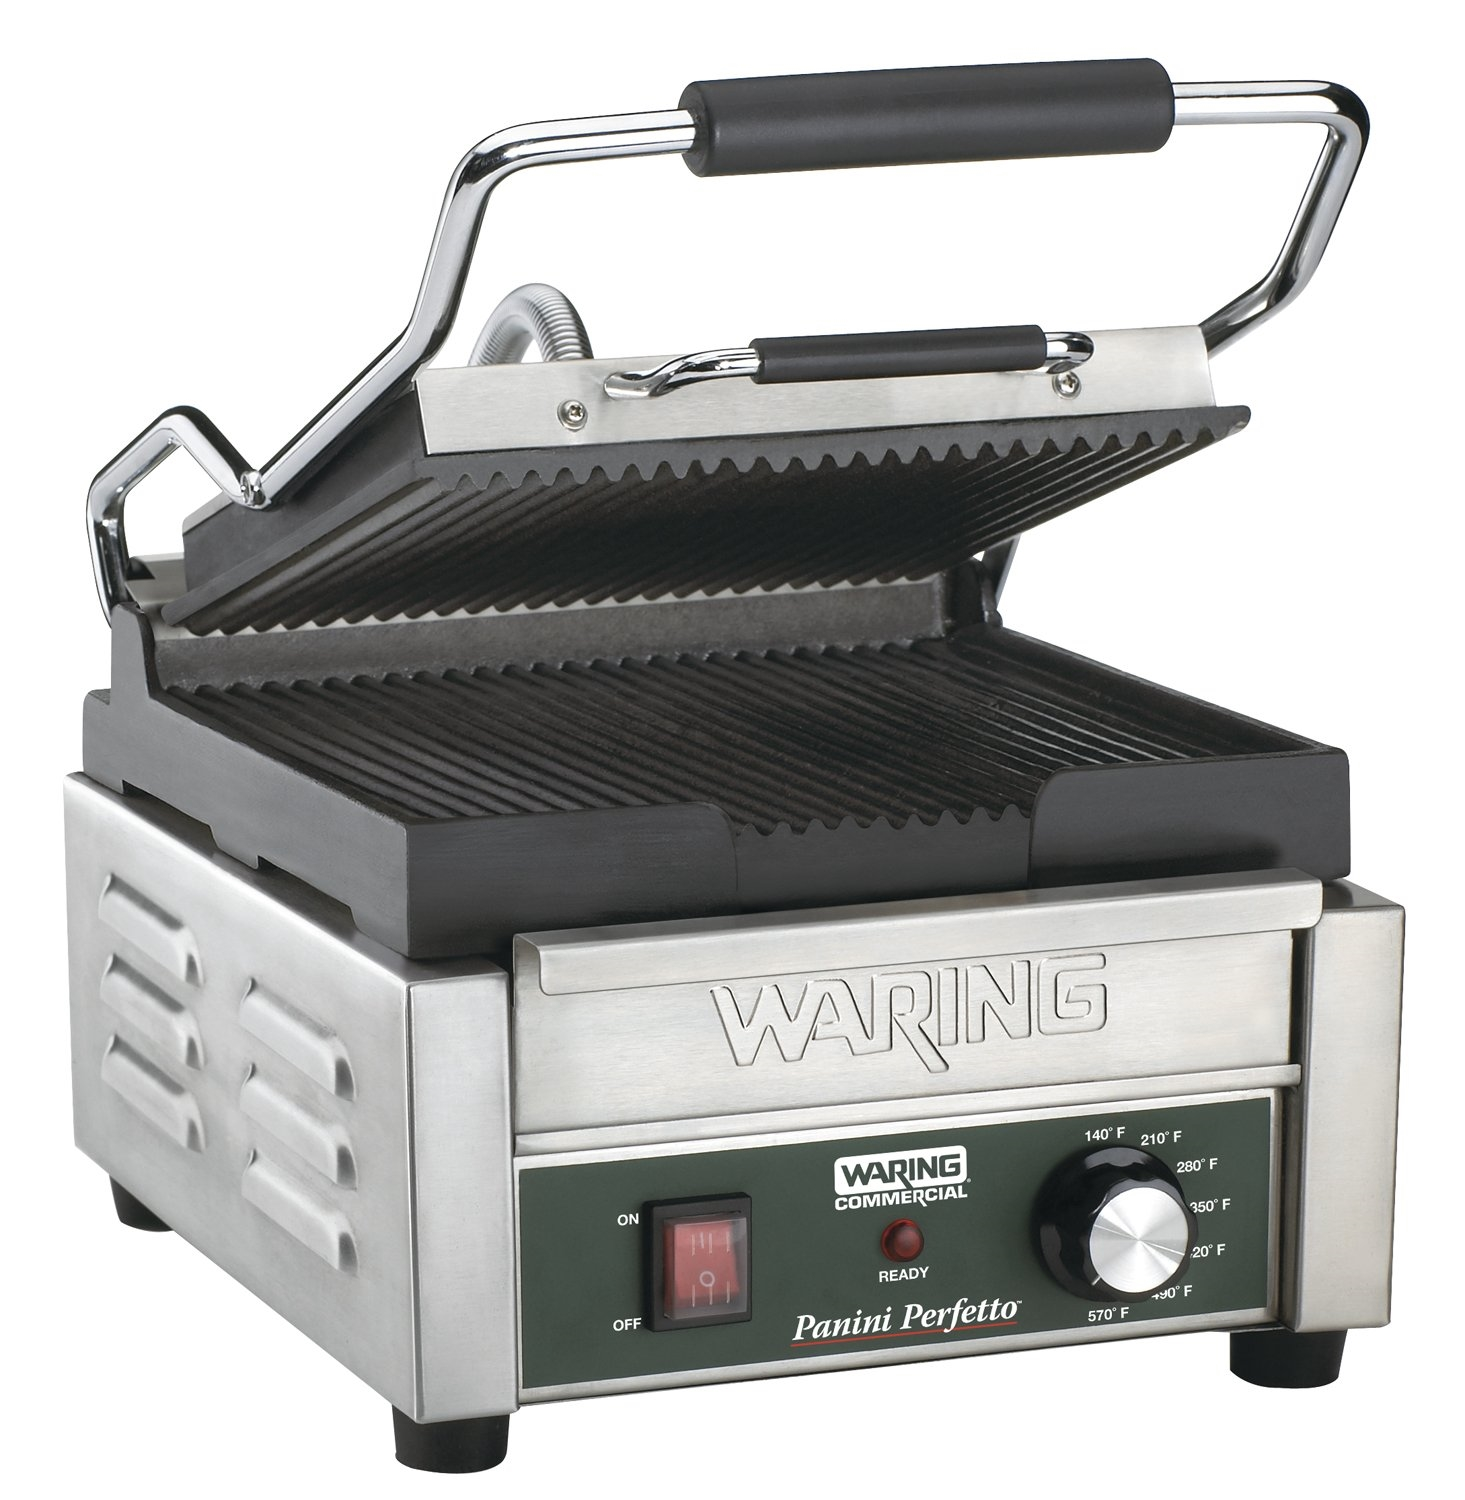 waring panini grill small single ribbed 120v wpg150. Black Bedroom Furniture Sets. Home Design Ideas